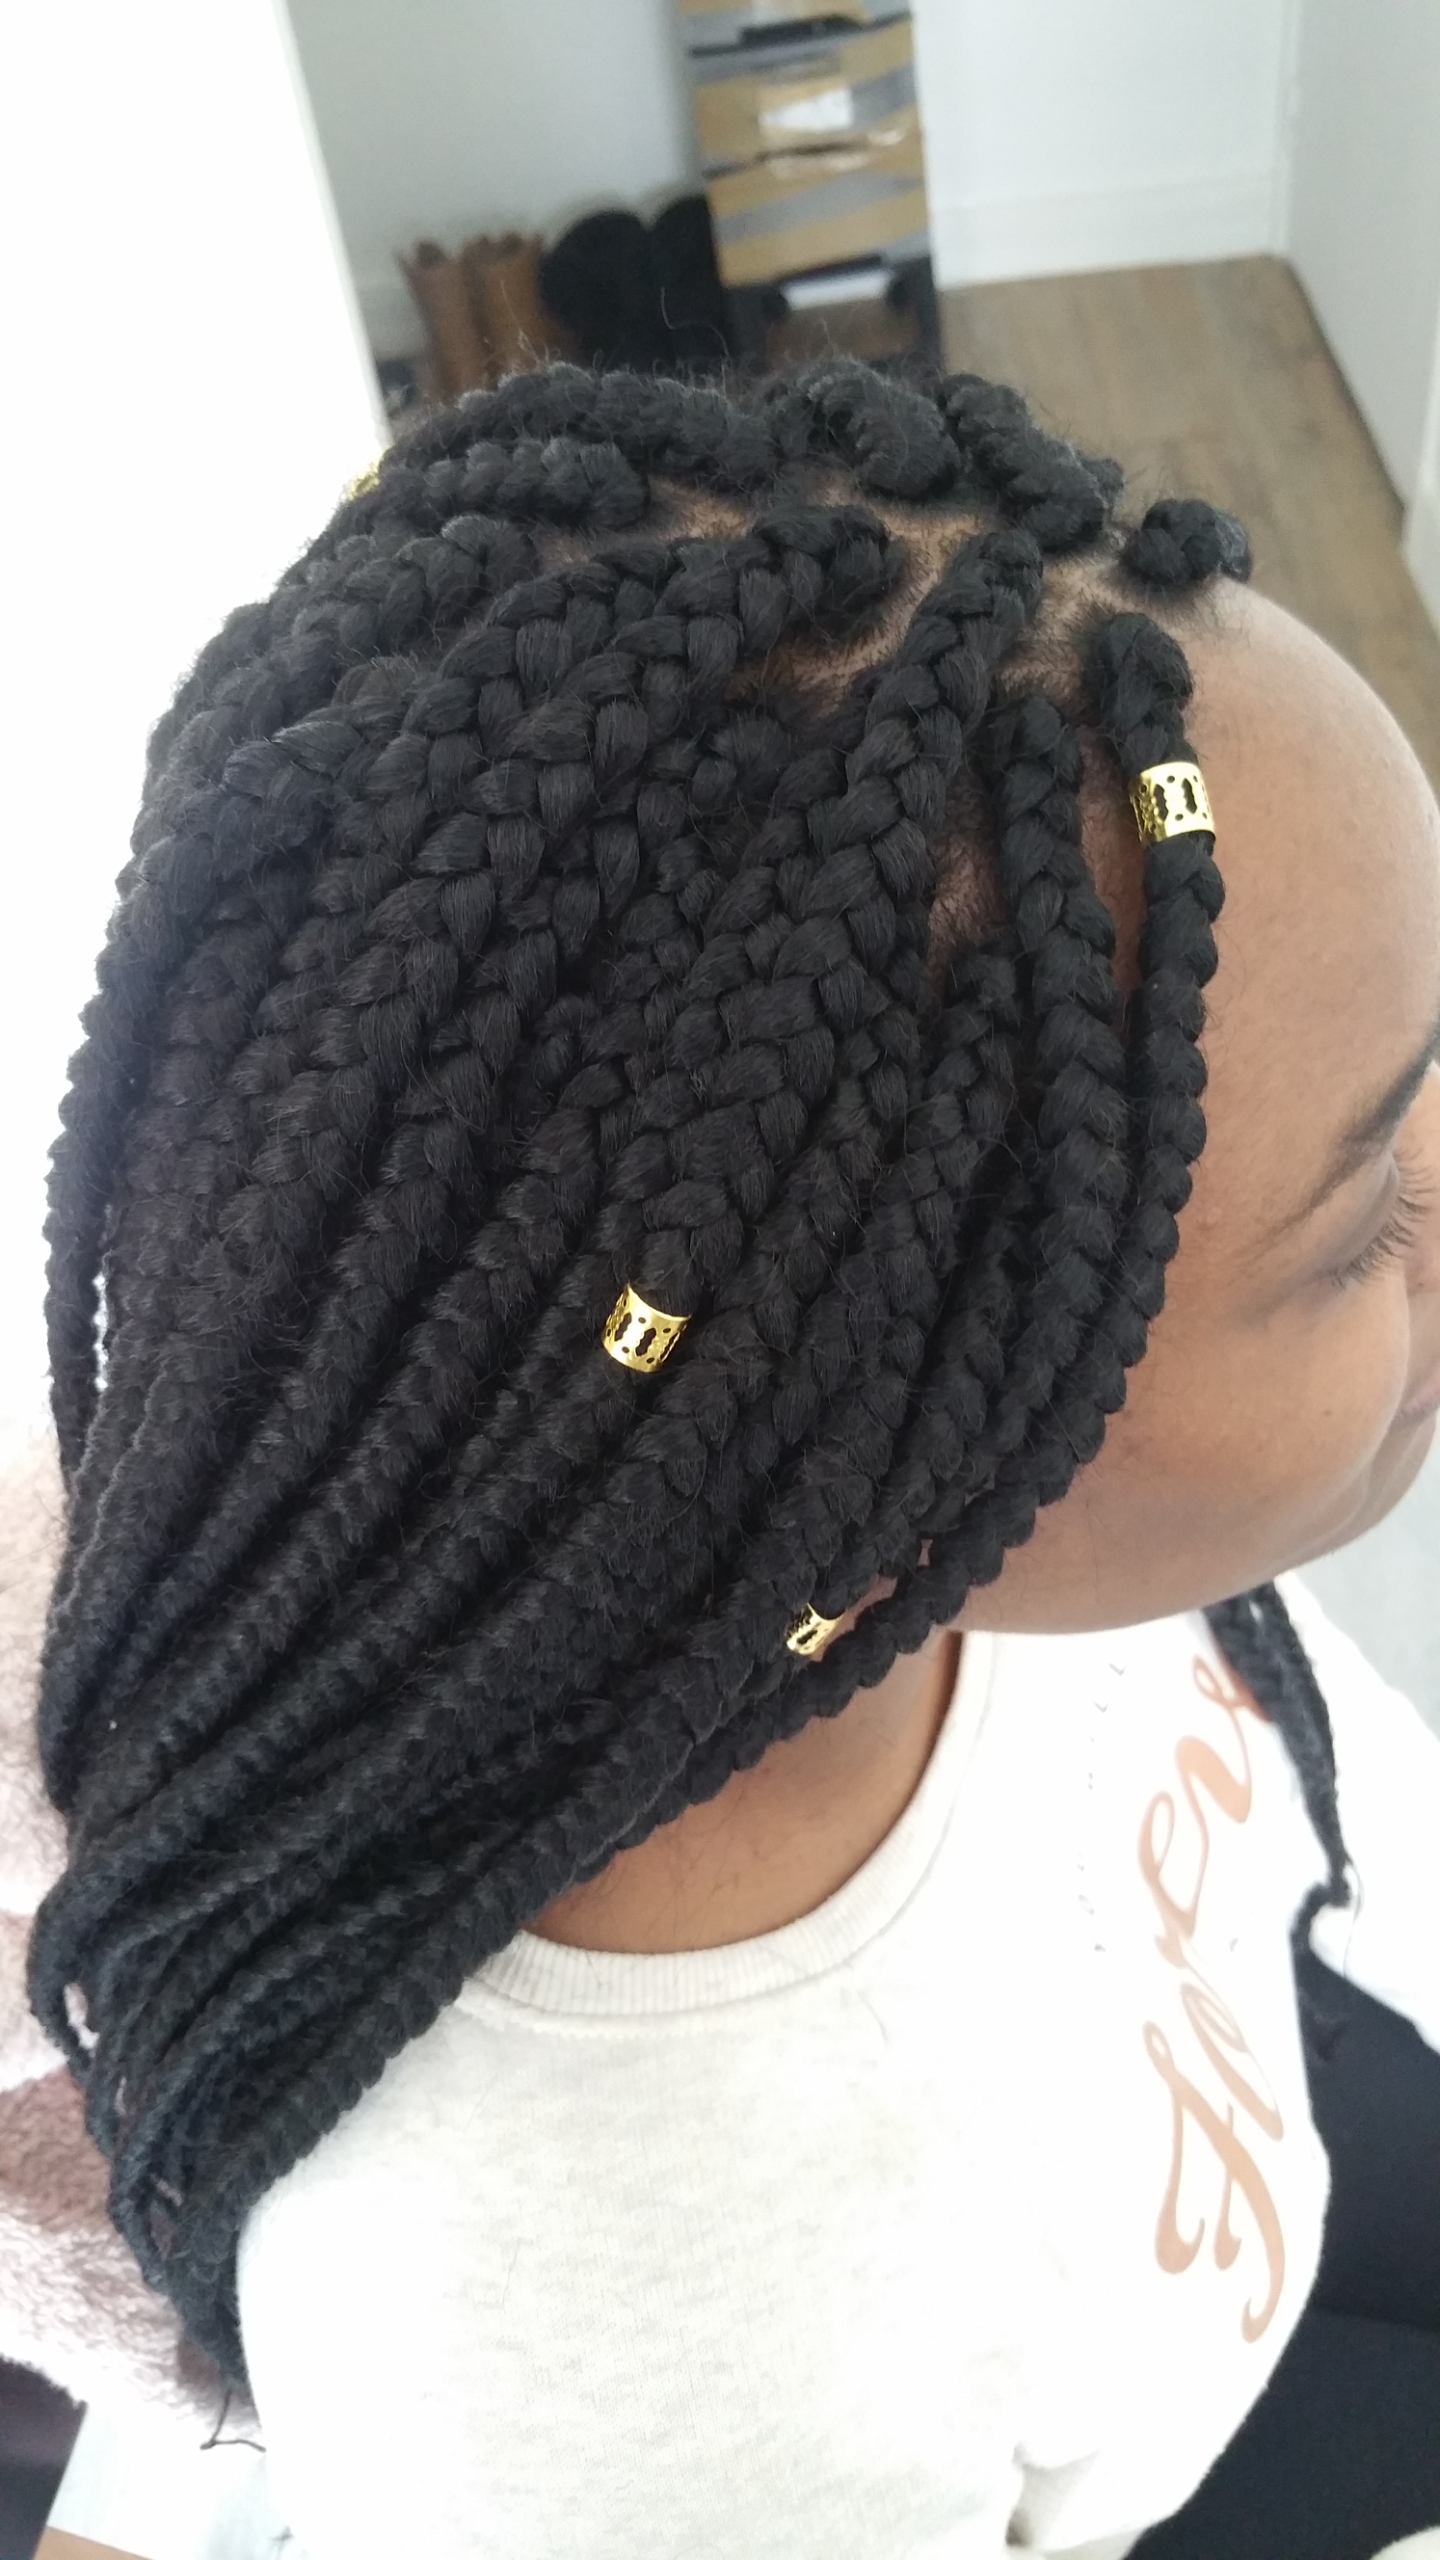 salon de coiffure afro tresse tresses box braids crochet braids vanilles tissages paris 75 77 78 91 92 93 94 95 QHWJGOUV